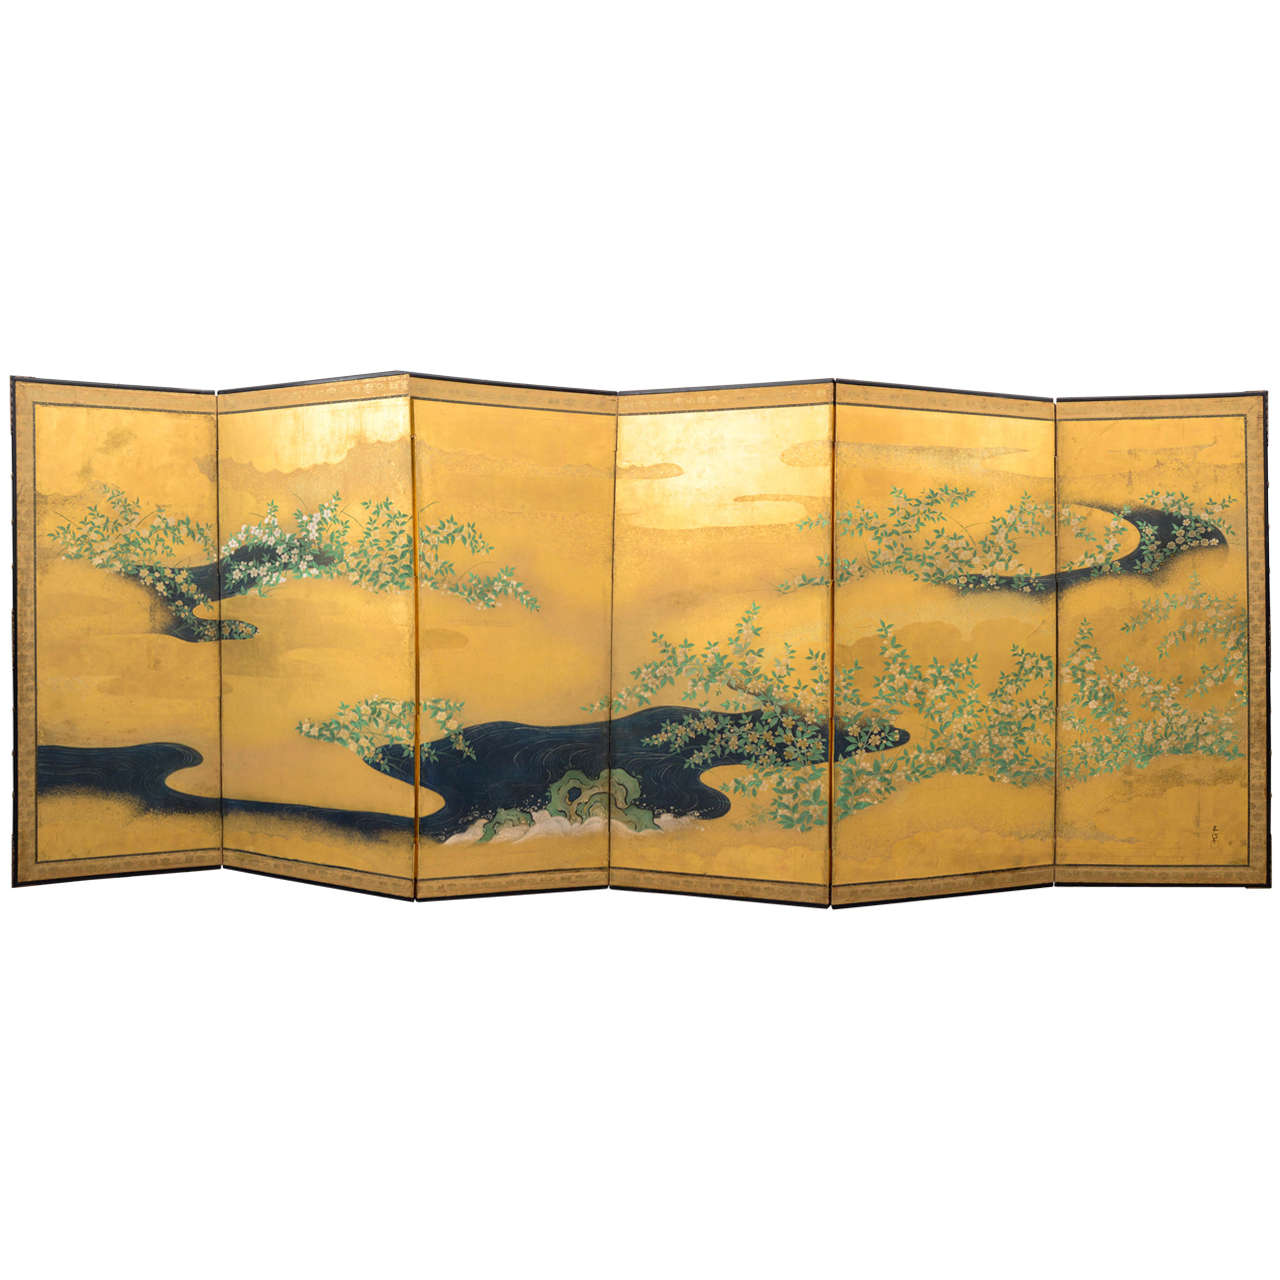 Antique japanese screens for sale - Edo Six Panel Japanese Screen